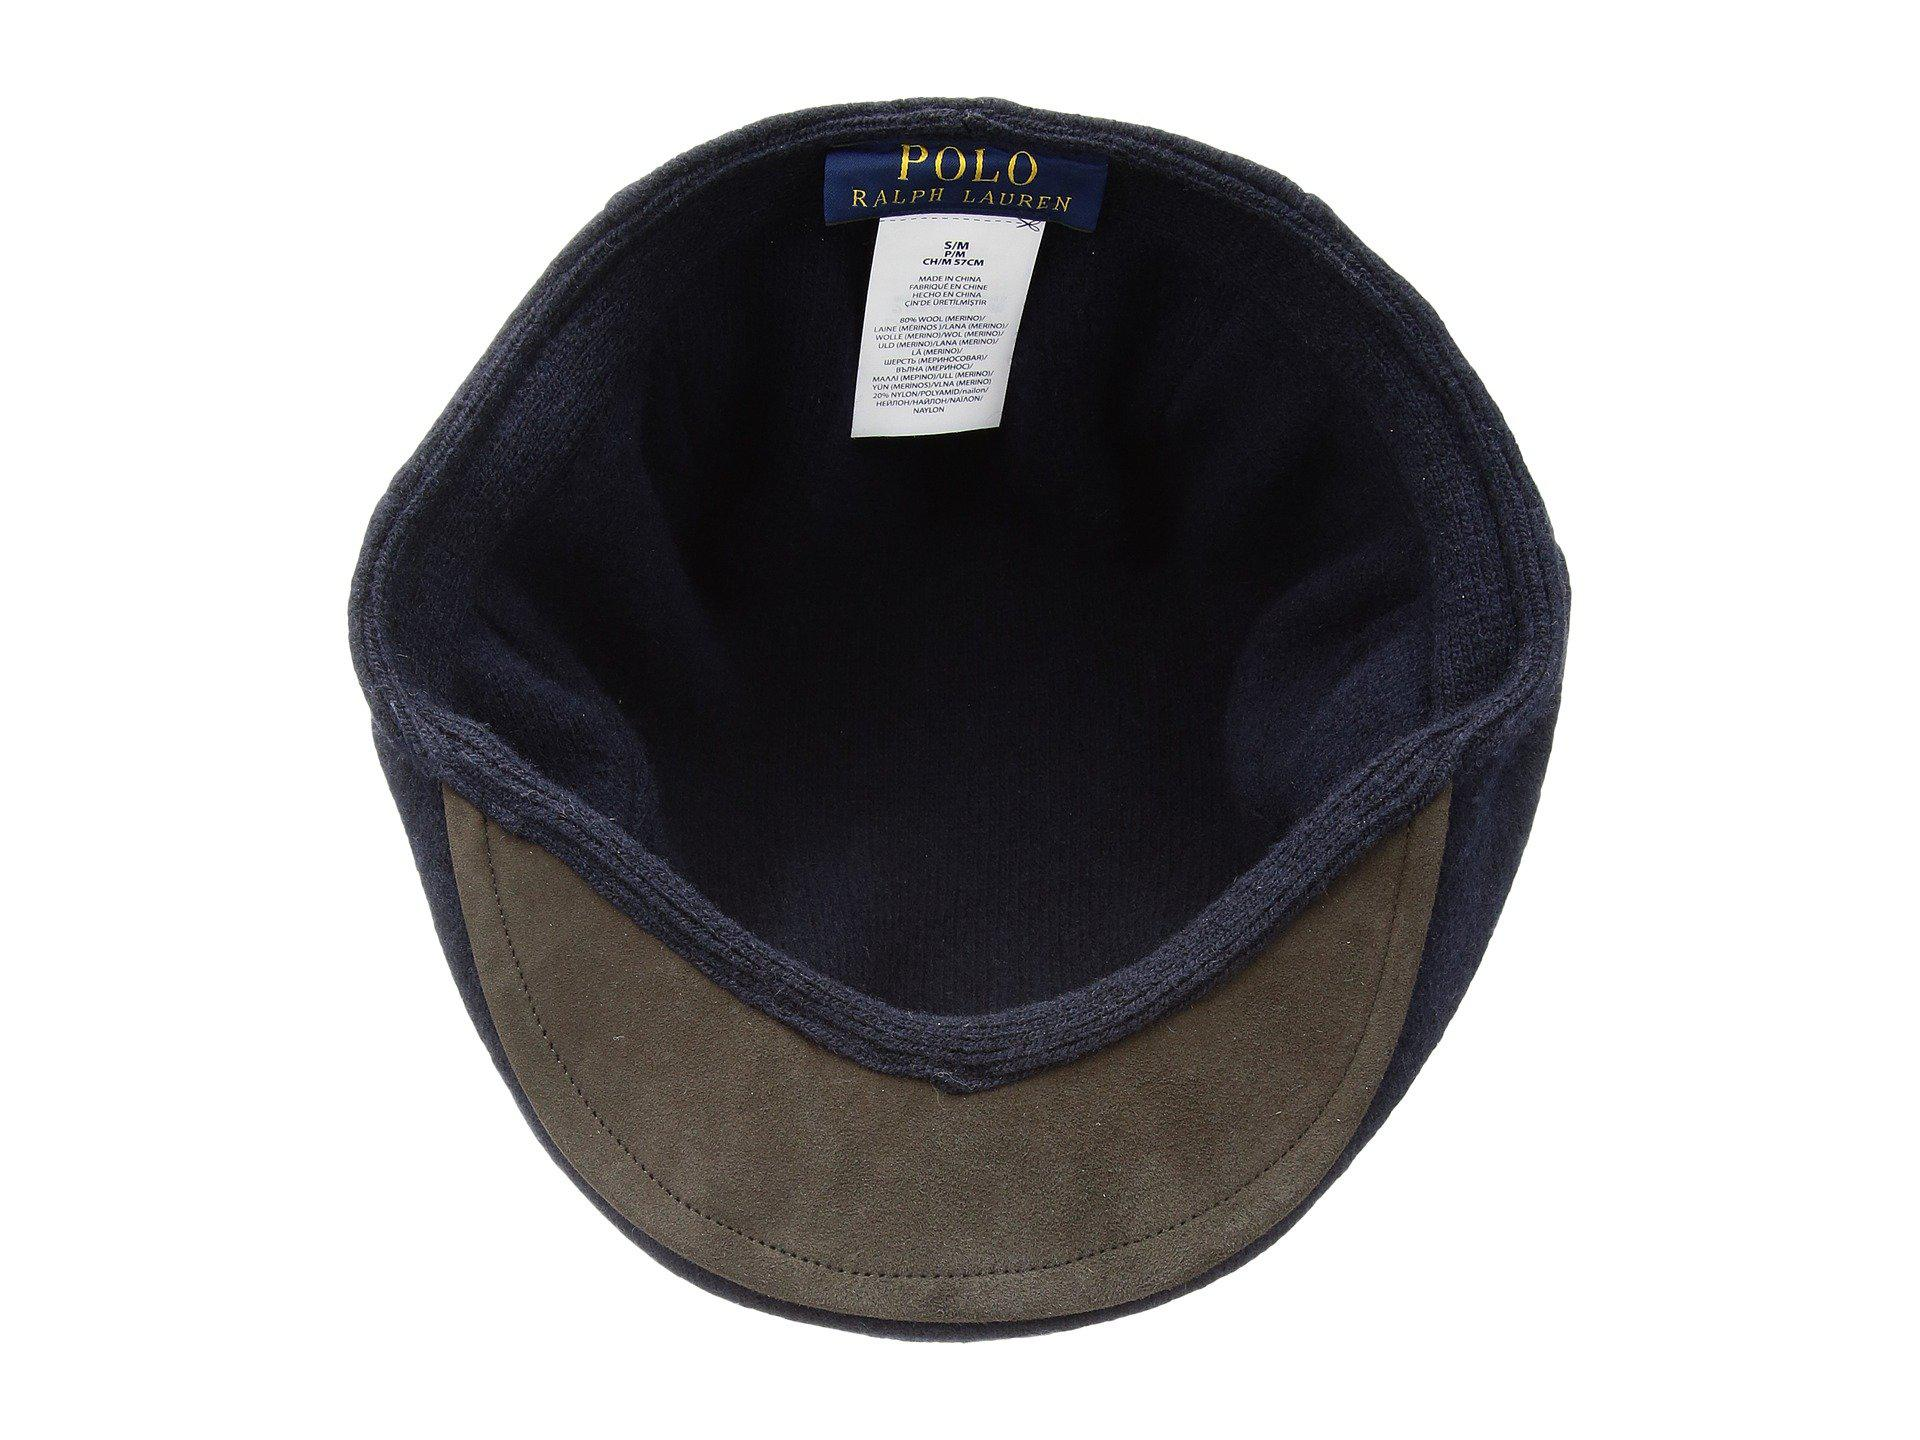 aeb240bb9 Lyst - Polo Ralph Lauren Solid Driver Cap in Blue for Men